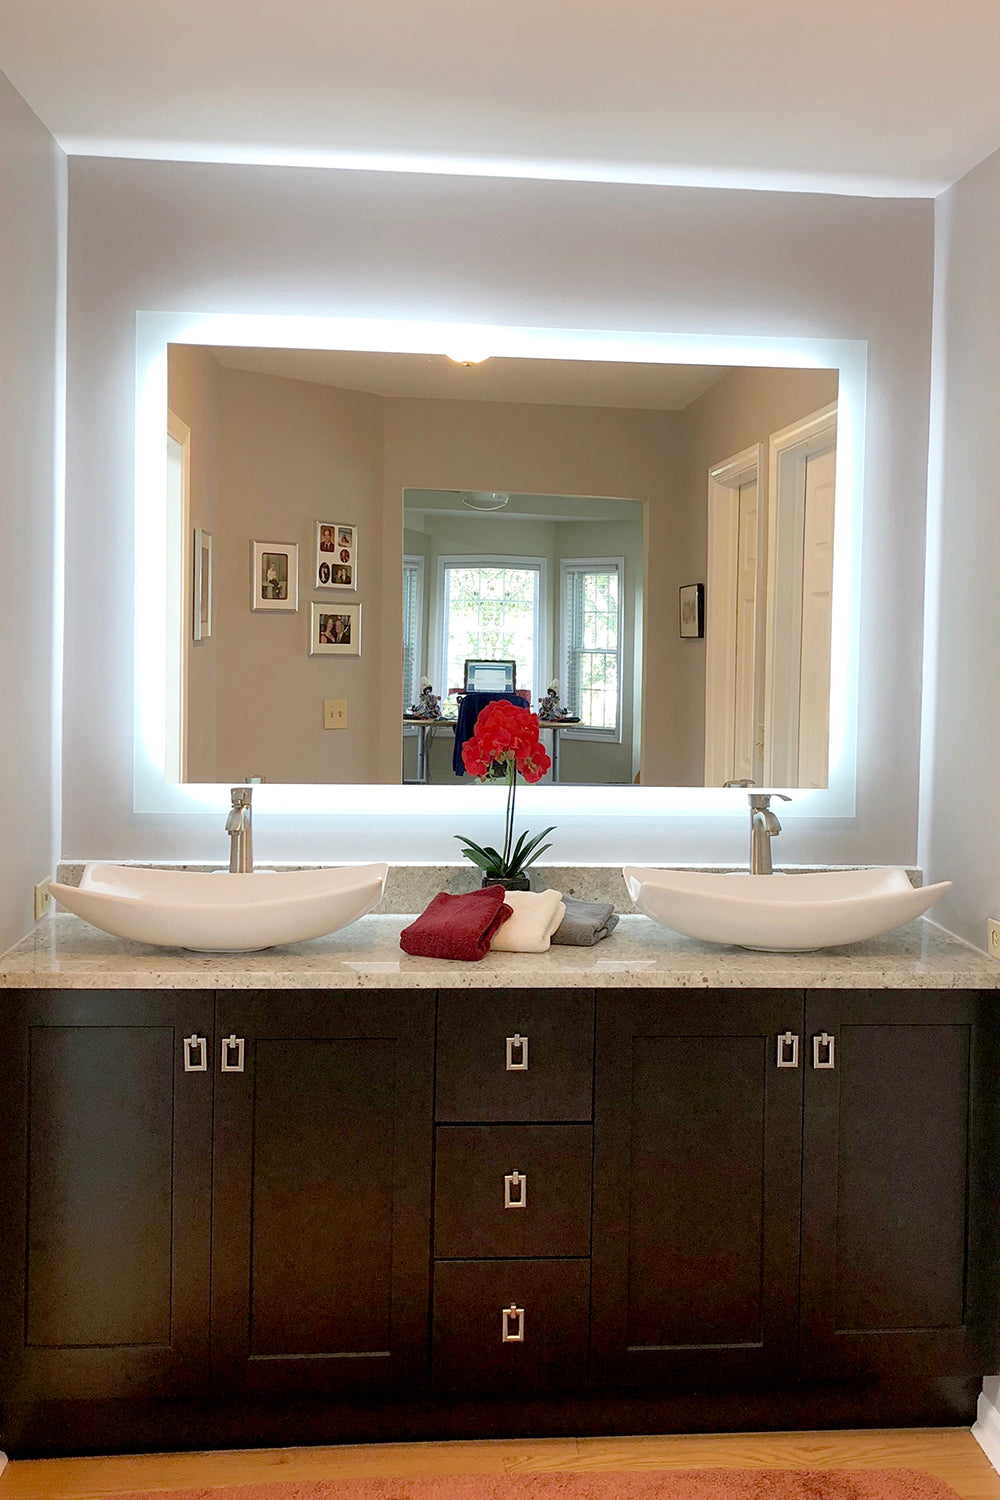 Picture of: Side Lighted Led Bathroom Vanity Mirror 48 X 32 Rectangular Mirrors Marble